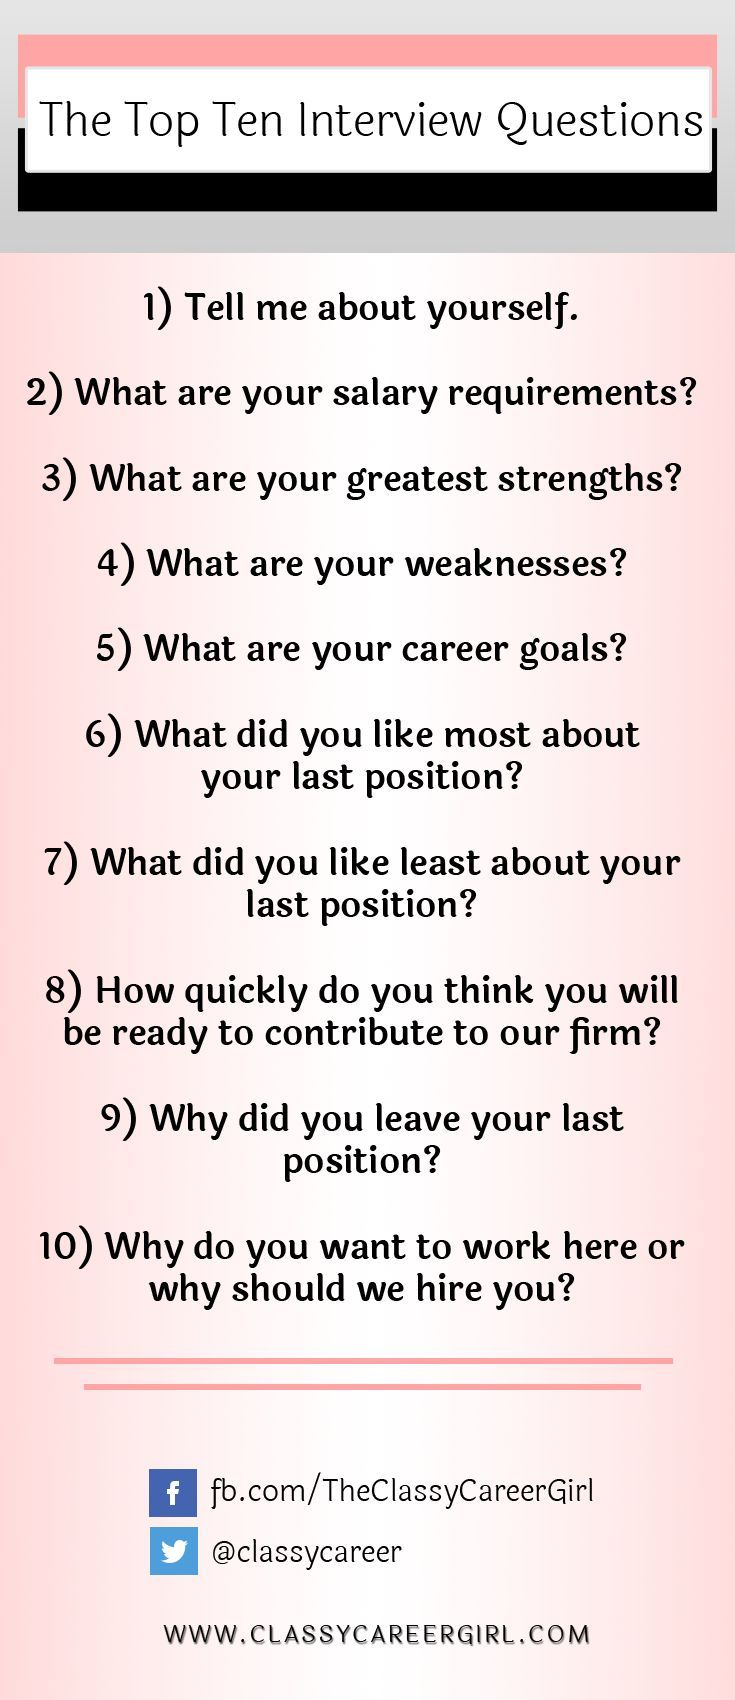 we have worked with recruiters and hiring managers to come up with the top ten interview questions that you'll want to have ready to go. http://www.classycareergirl.com/2013/04/how-to-answer-the-top-ten-interview-questions-video/